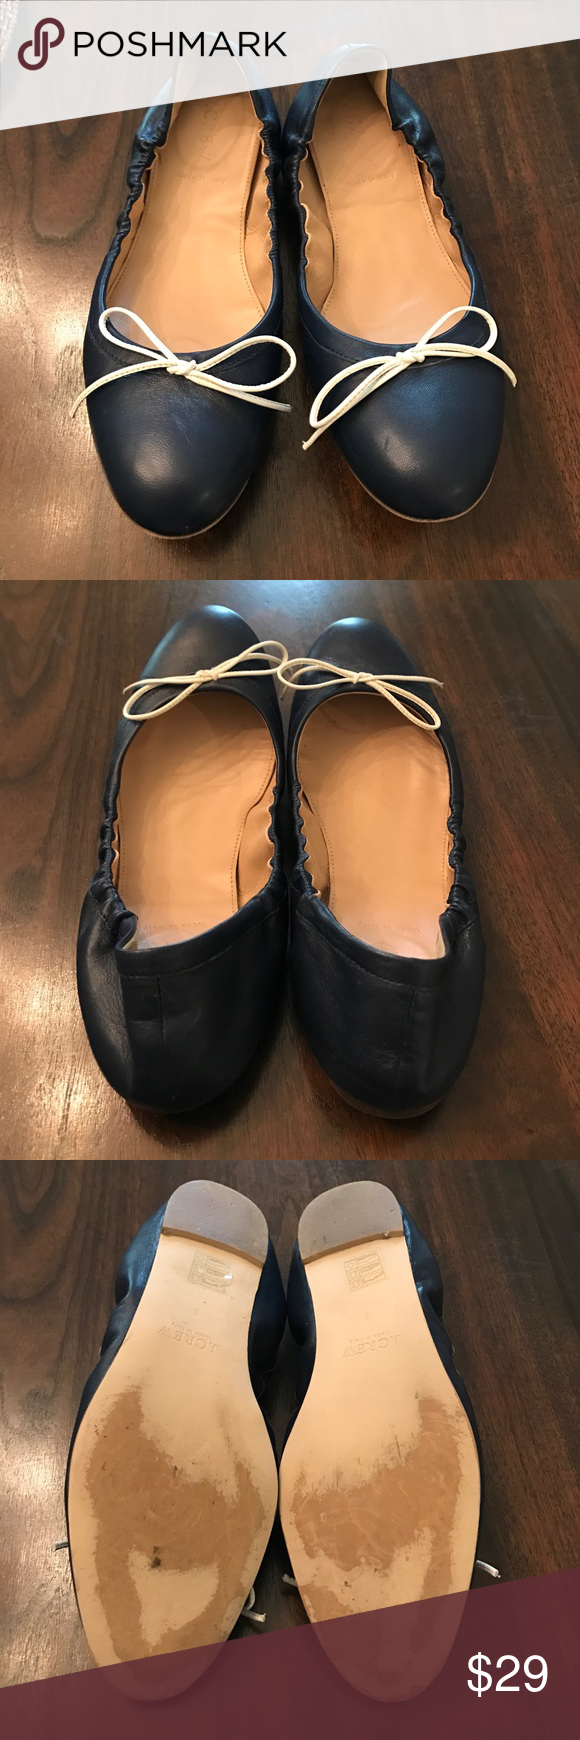 J.Crew Emma Bow Ballet Flats In good condition, no major flaws. Made in Italy. Leather upper and lining. Elastic ruching at the sides.  They run a little small.  Color: Navy. J. Crew Shoes Flats & Loafers